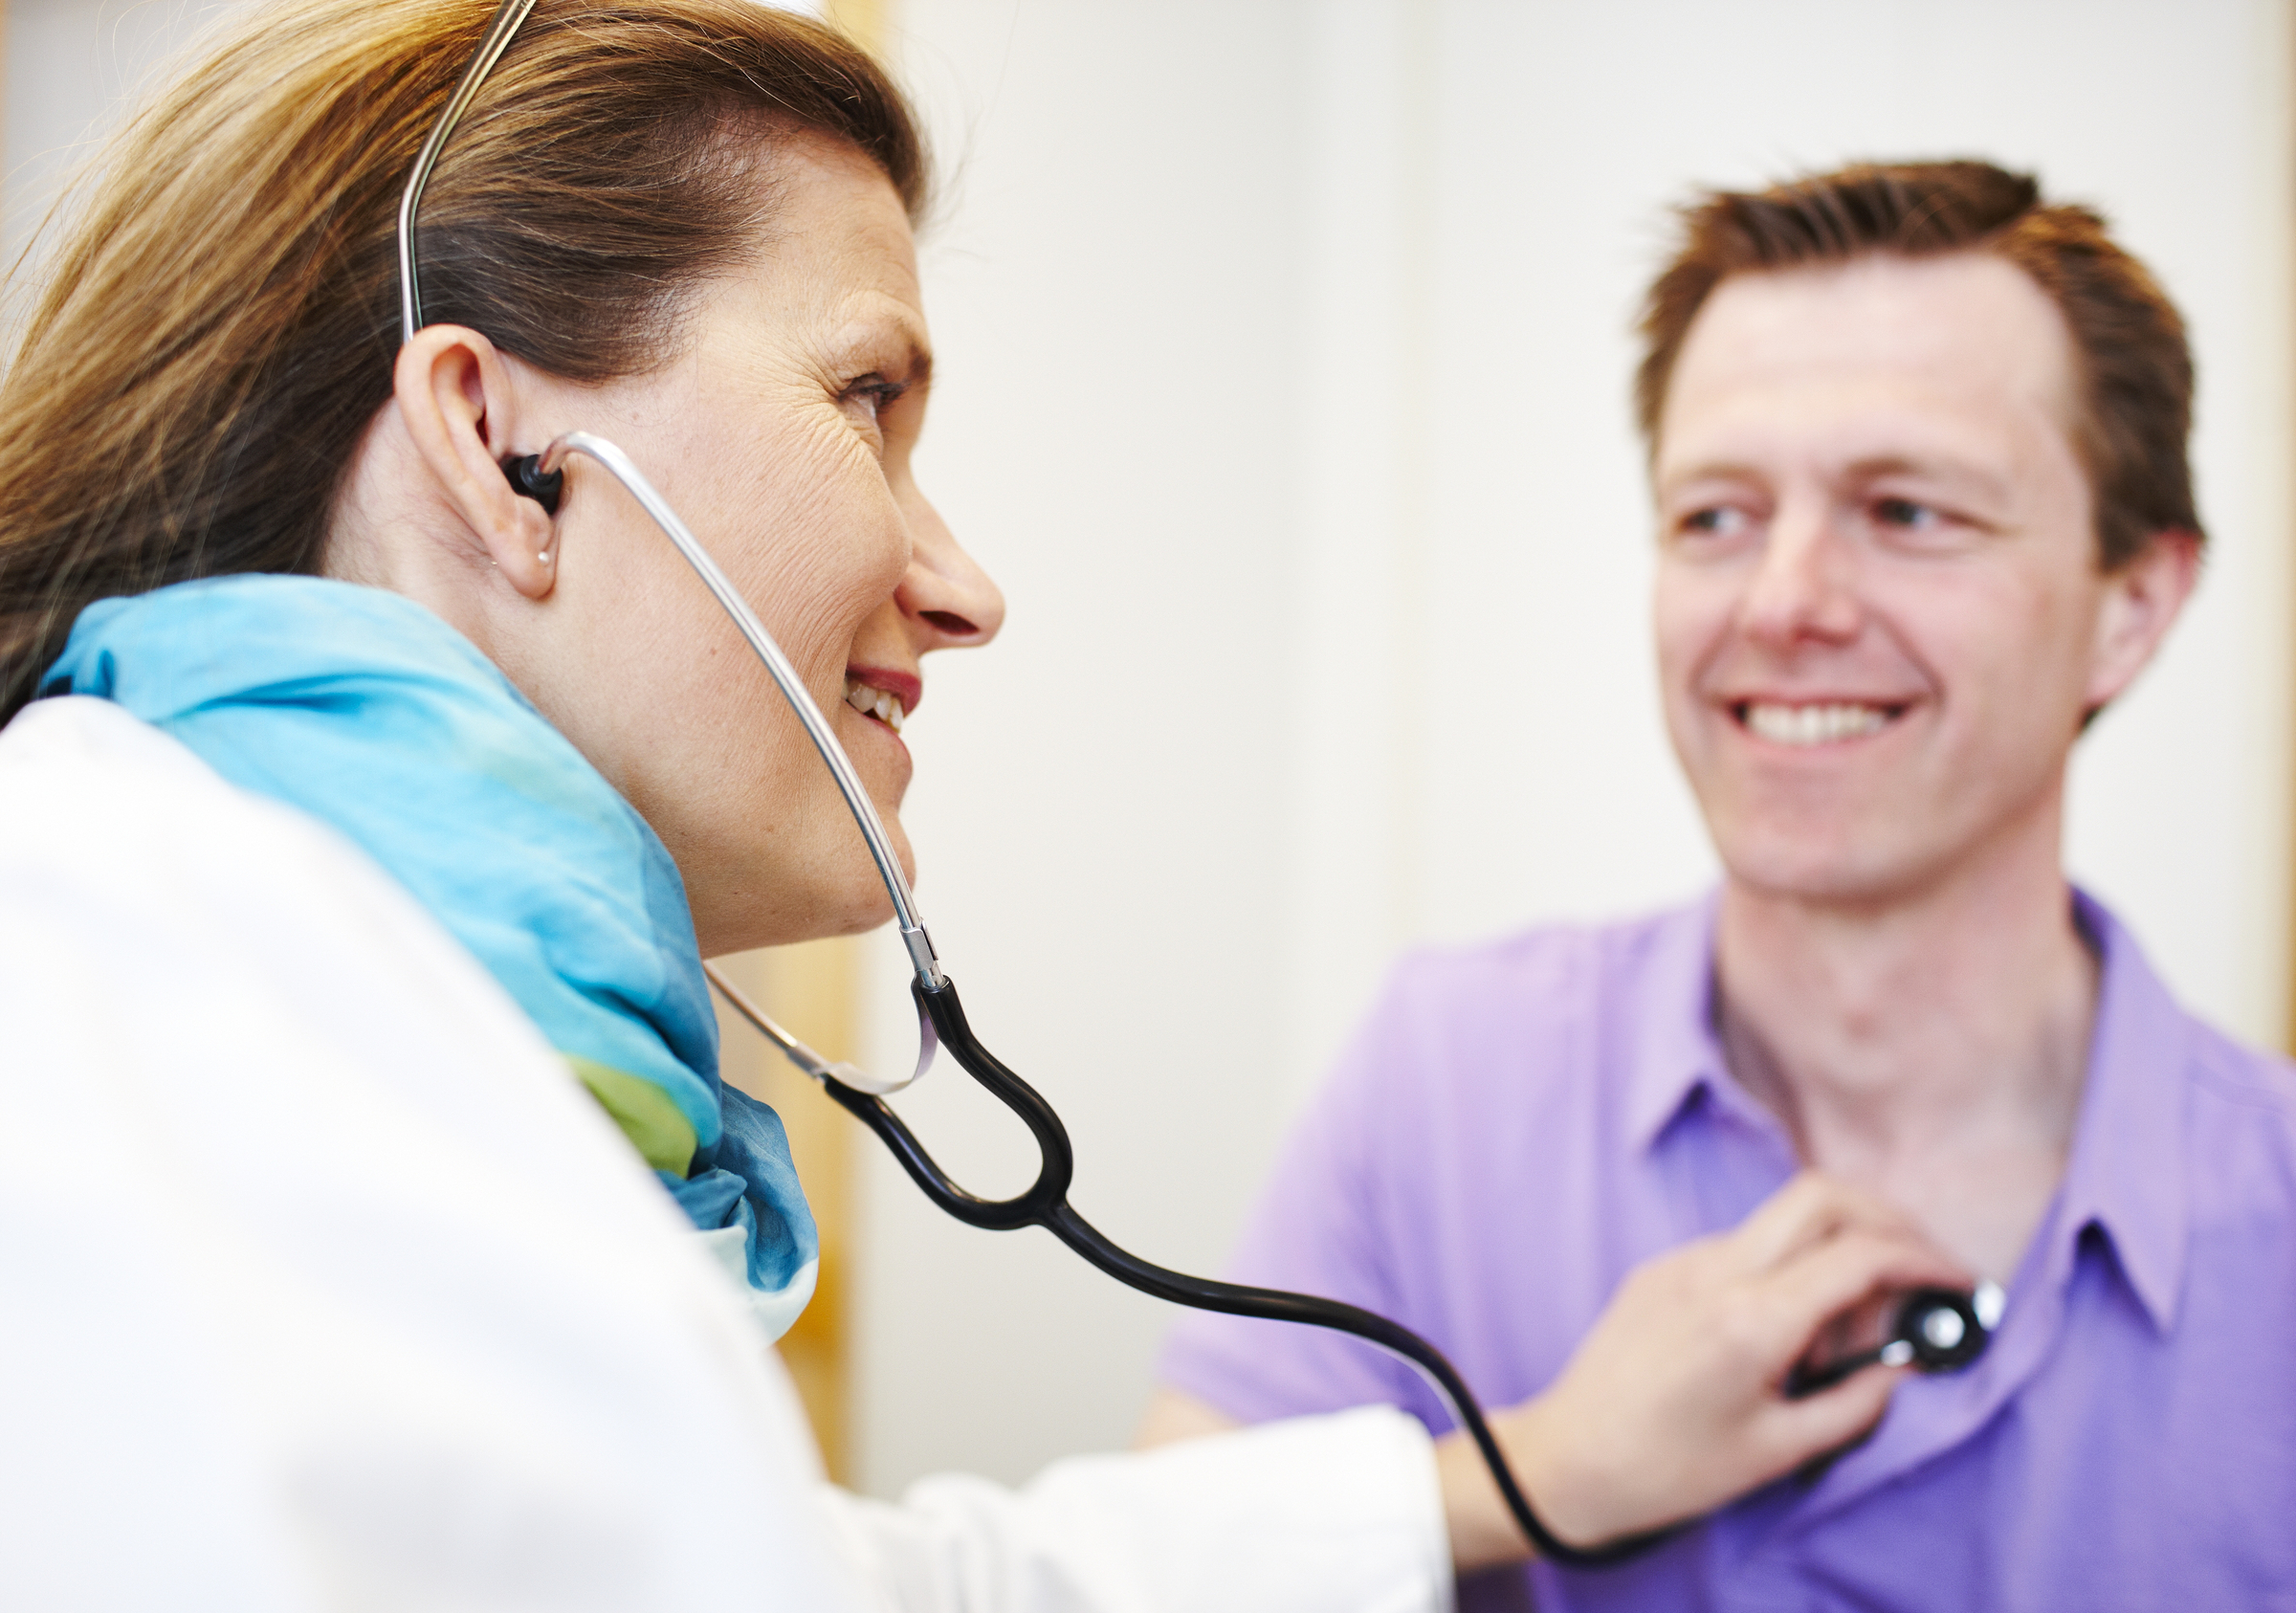 Man getting checked by a doctor